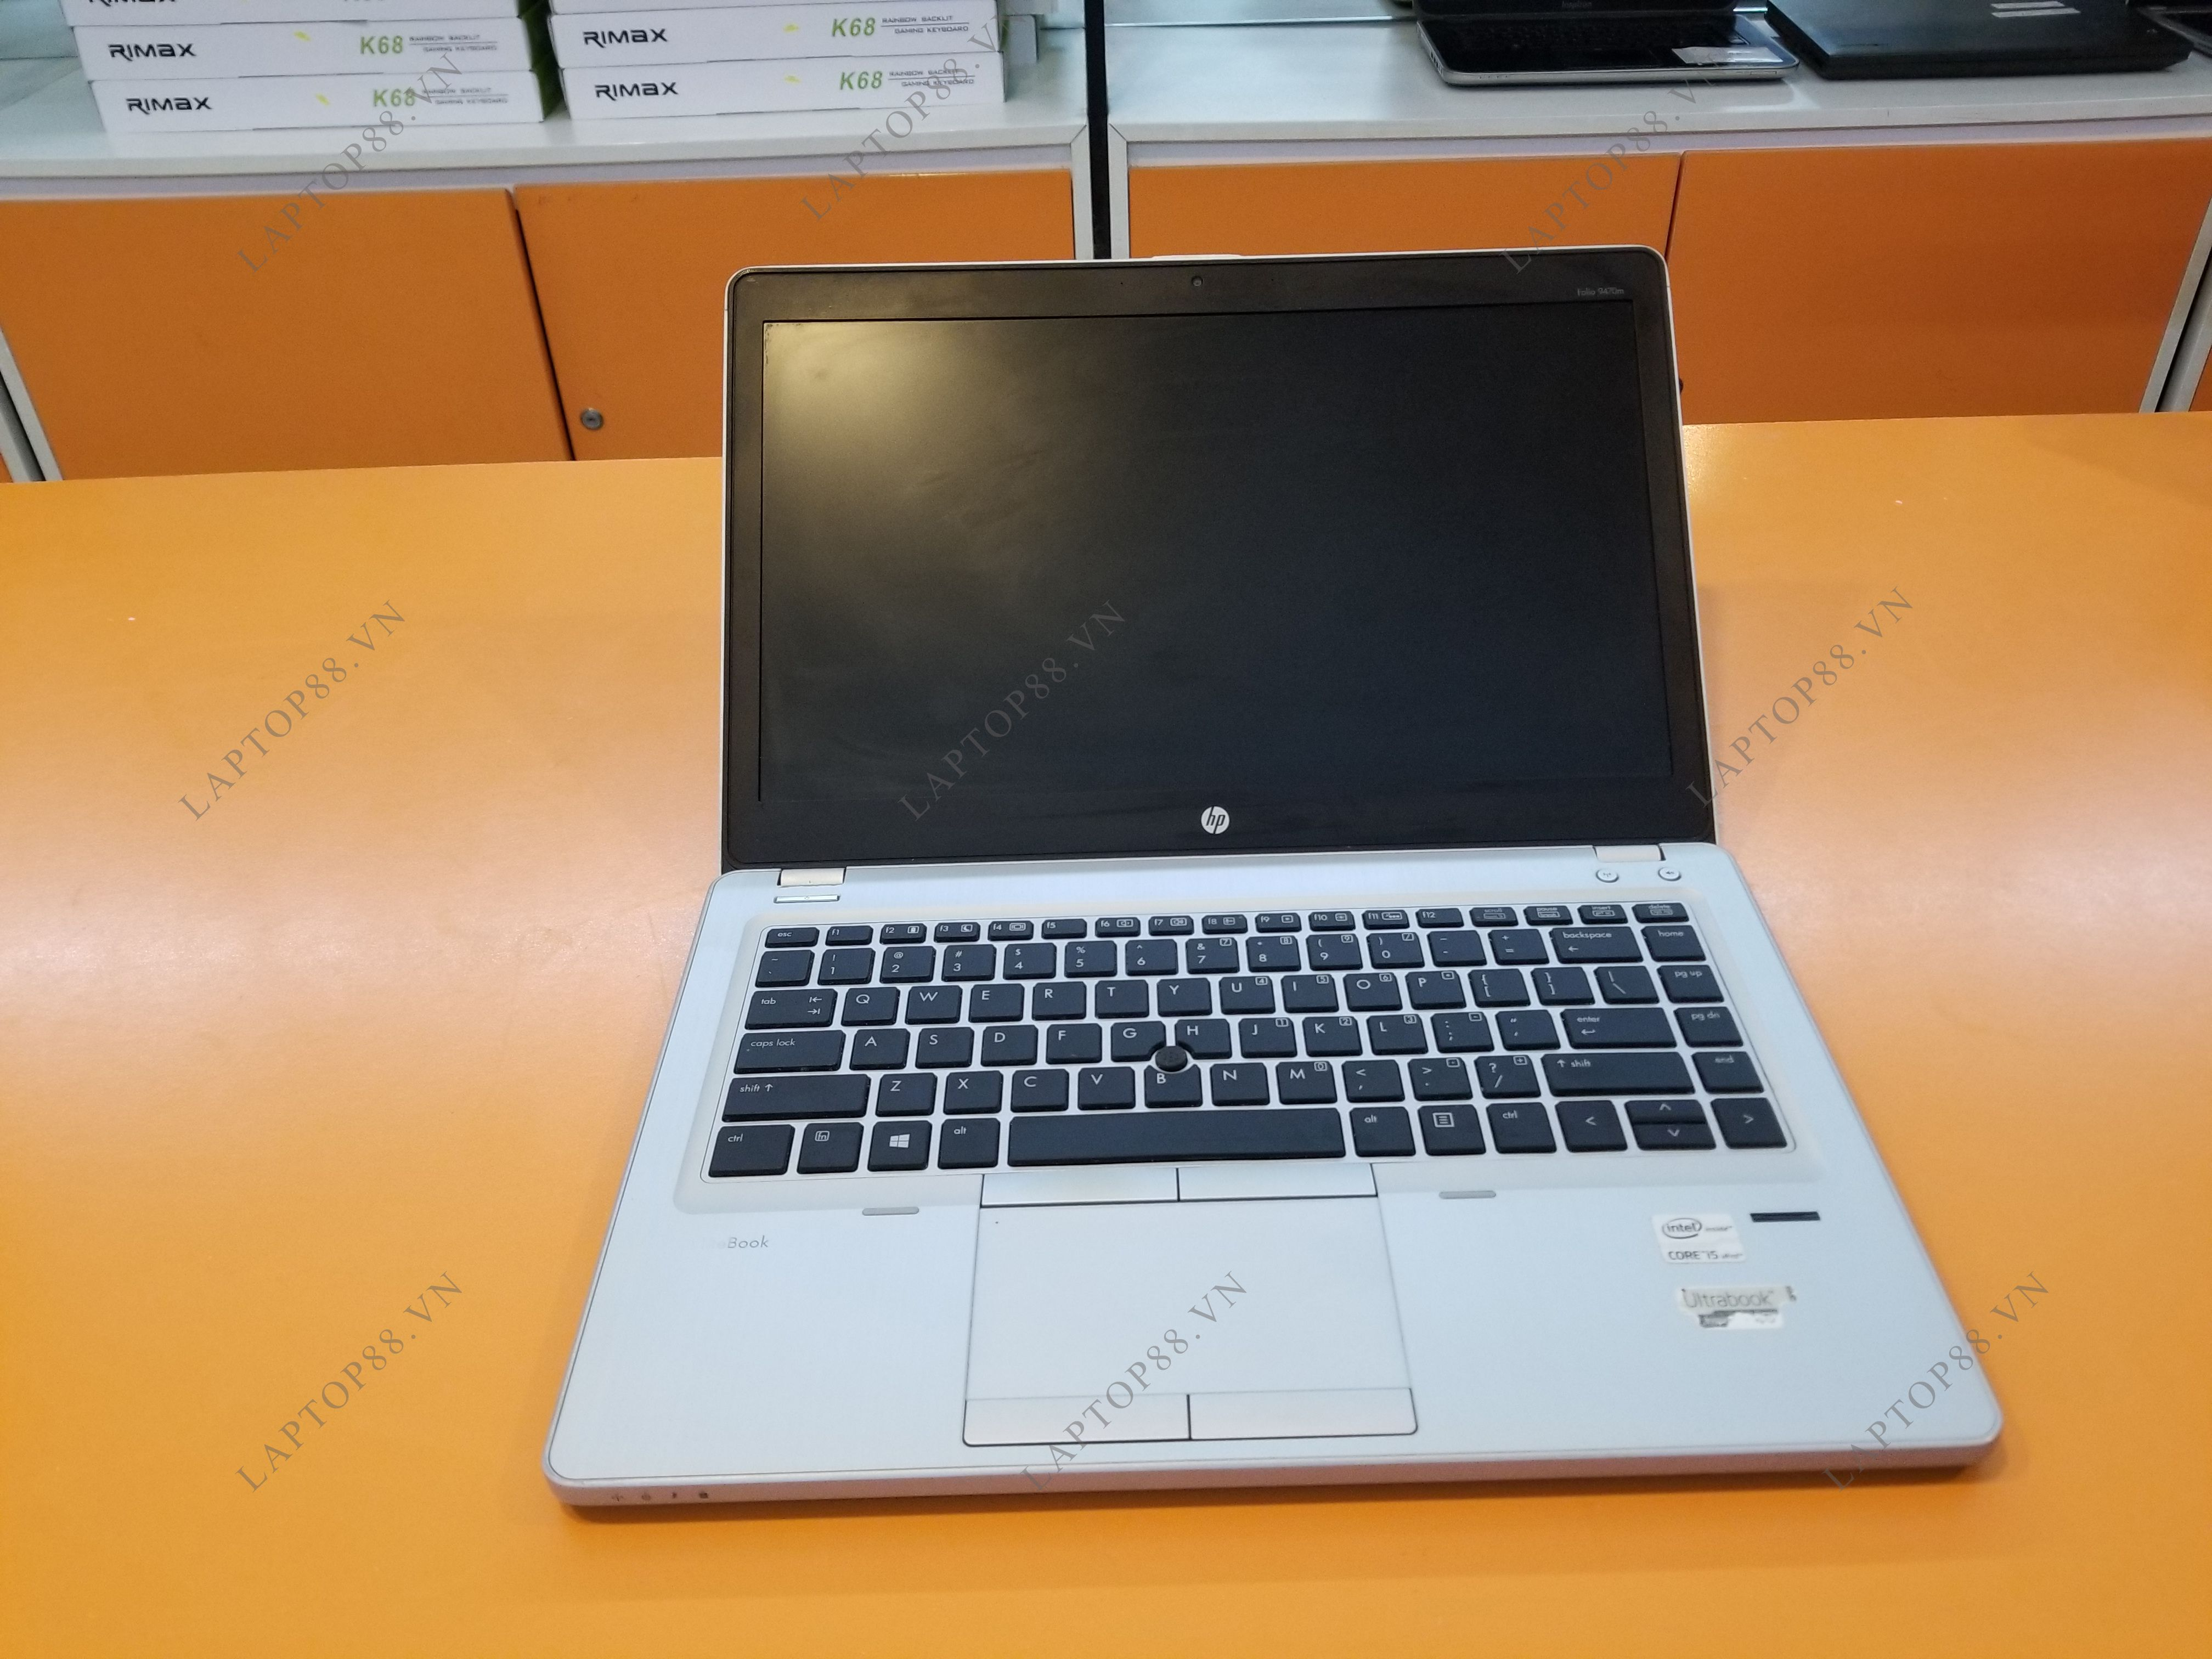 Laptop cũ Elitebook HP Folio 9470m (Core i5 3437U, 4GB, HDD 250GB, HD Graphics 4000, 14 inch) - Bảo hành 1 năm_1